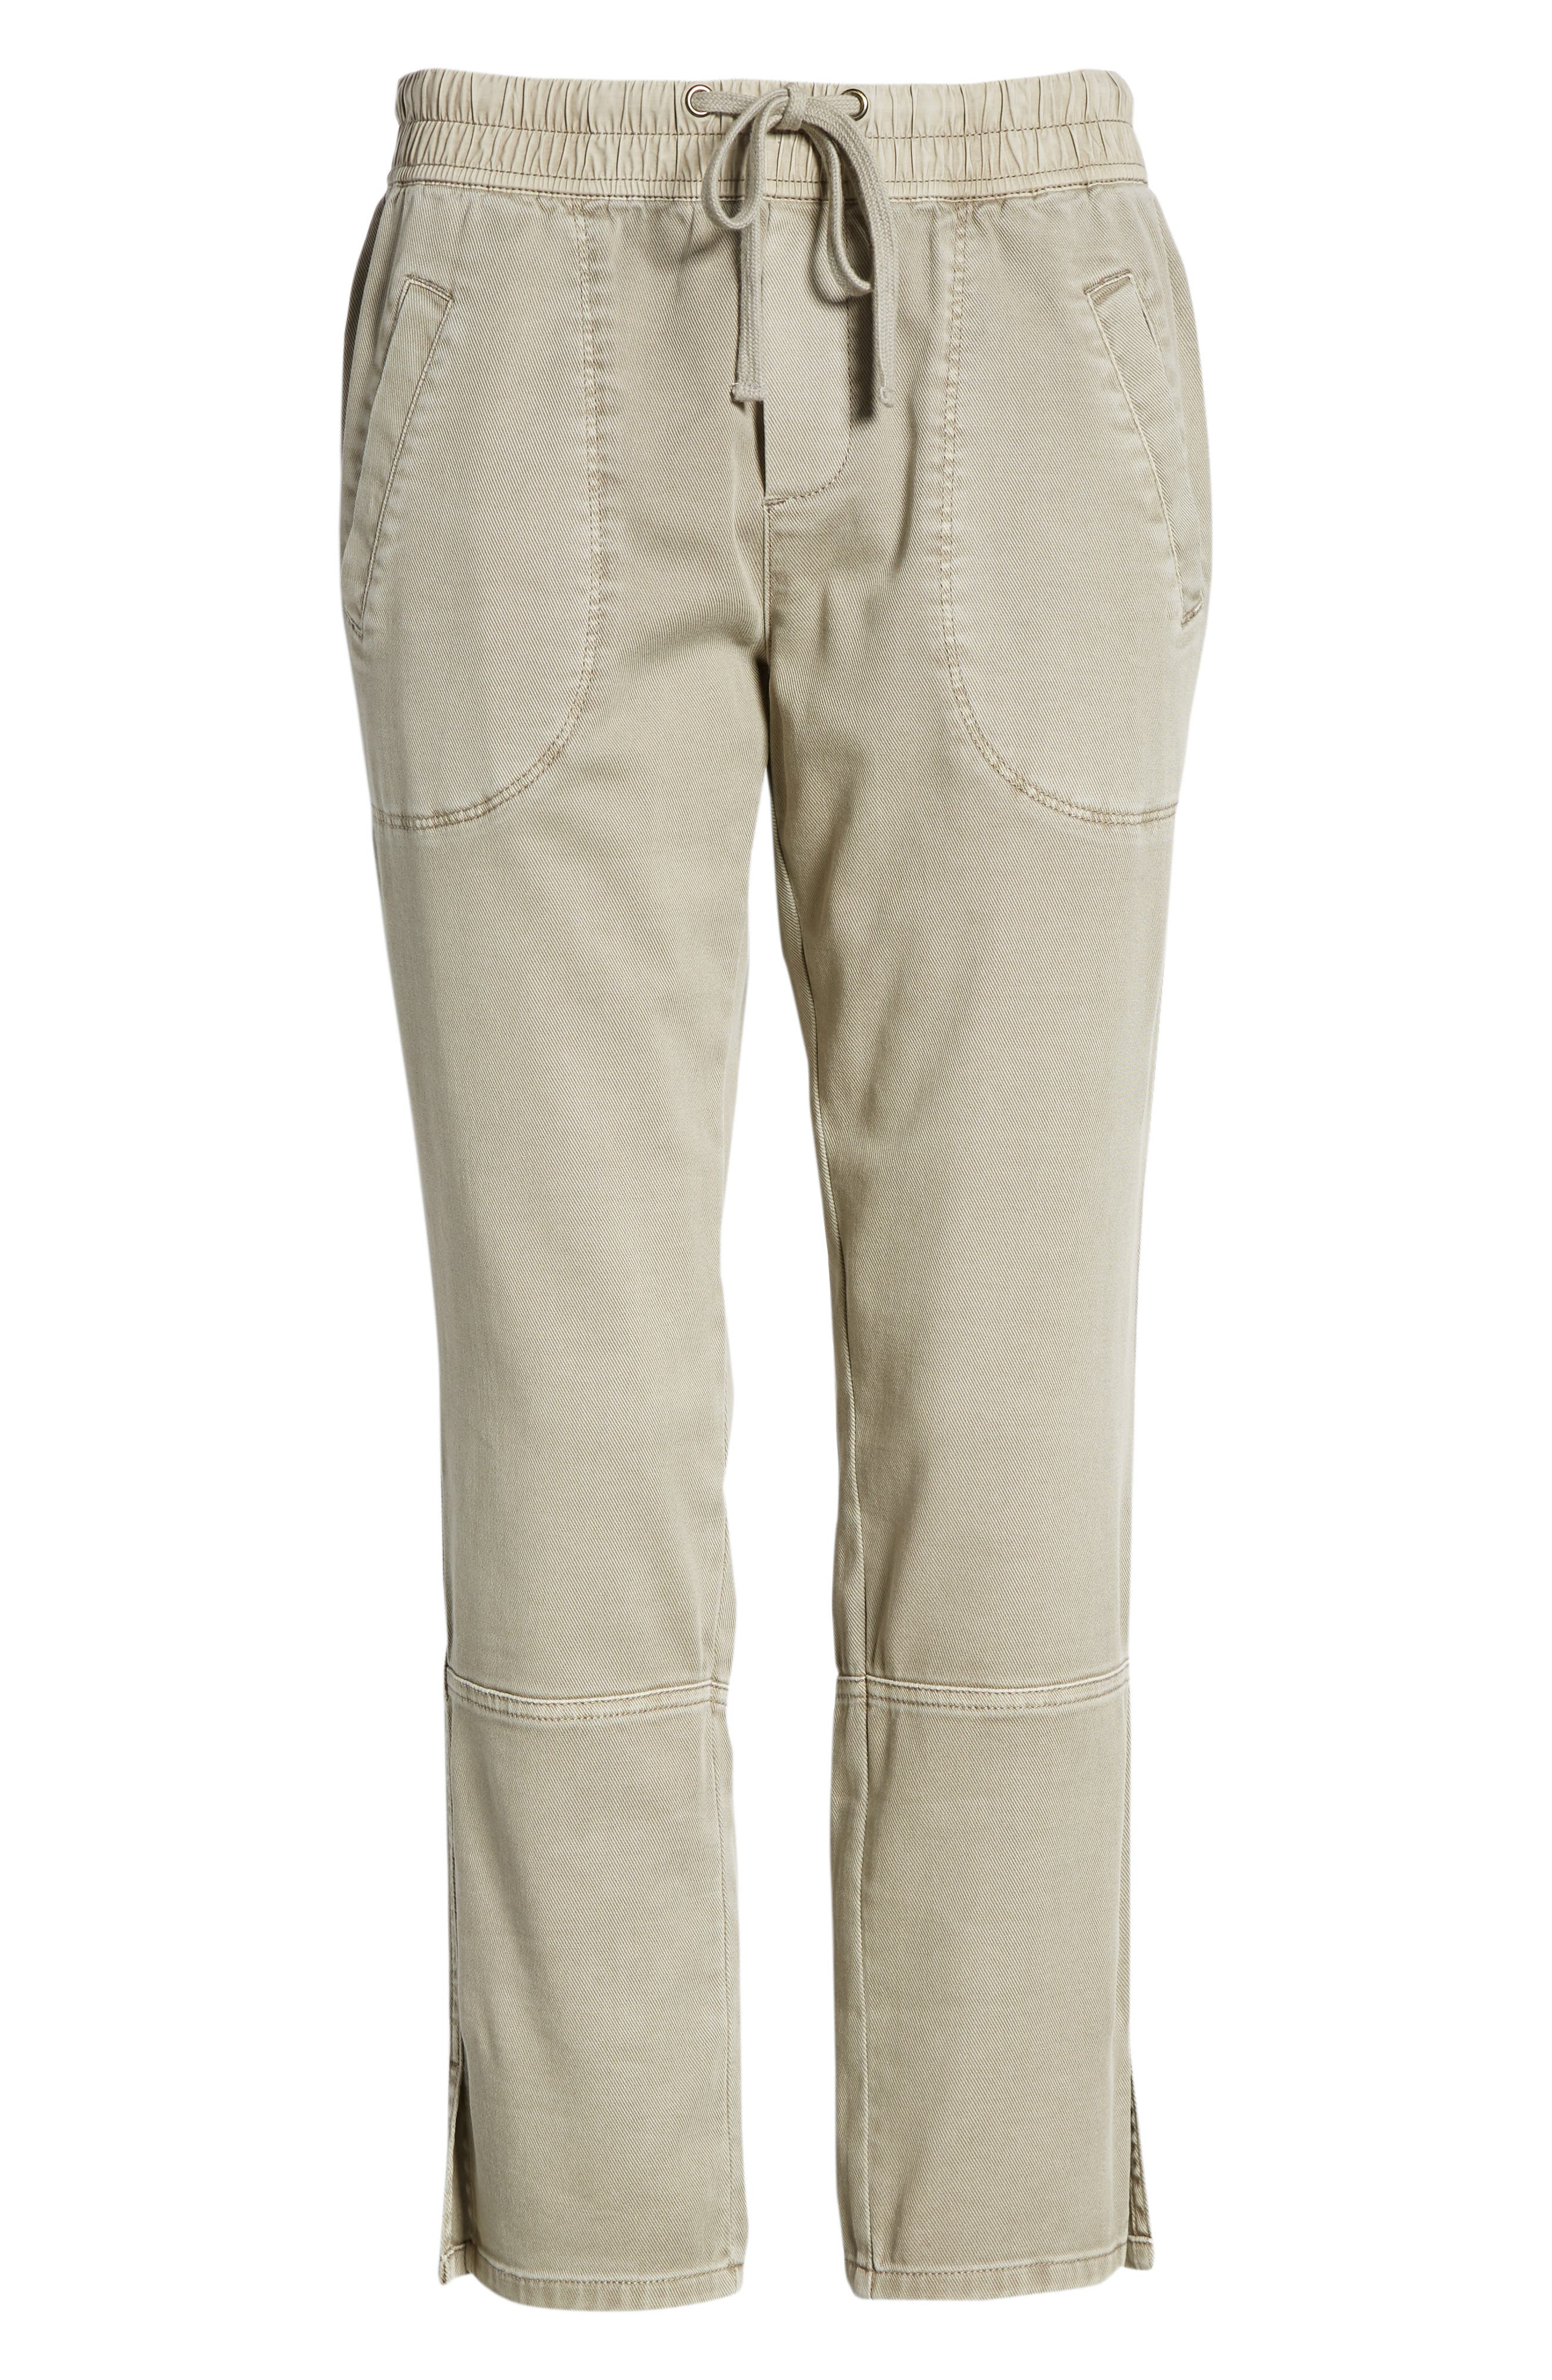 Open Road Ankle Pants,                             Alternate thumbnail 7, color,                             Flax